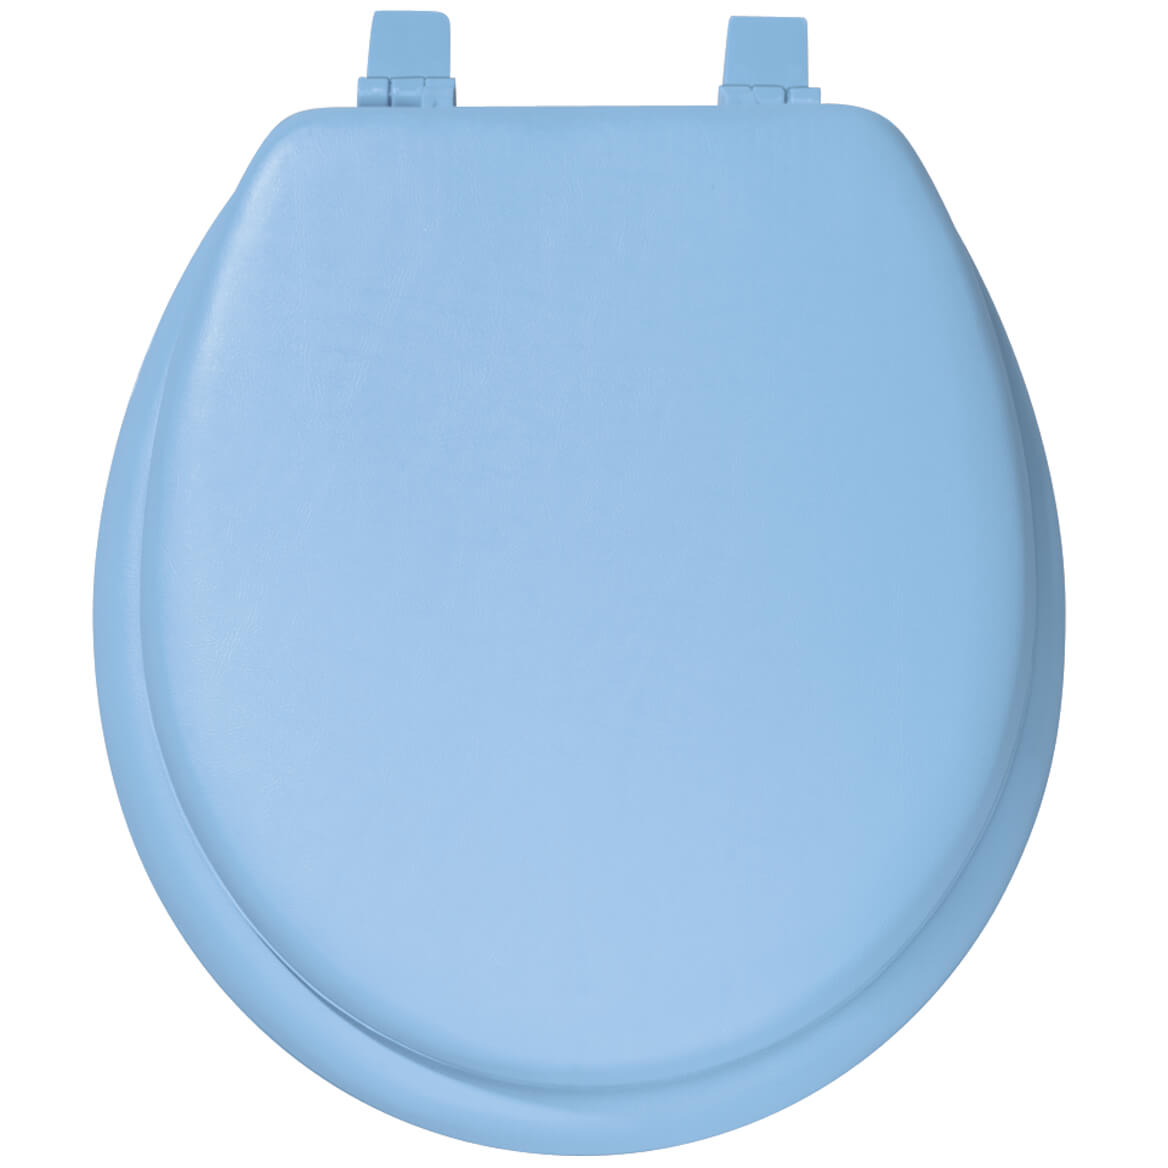 Padded Toilet Seat And Lid - Cushioned Toilet Seat - Miles Kimball